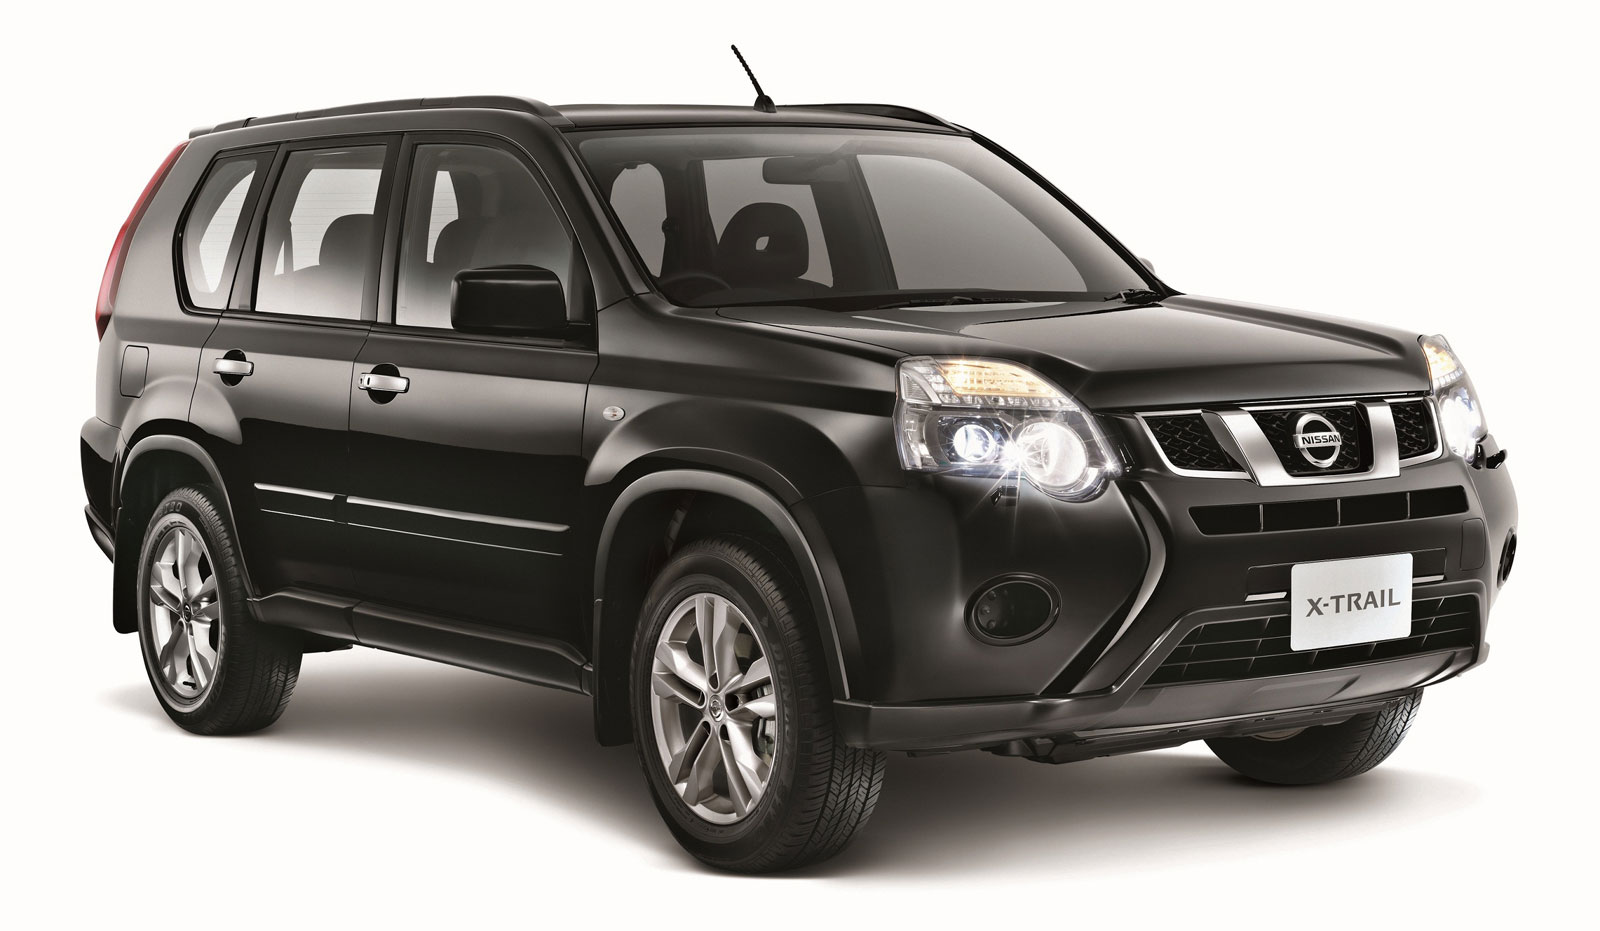 Nissan X-Trail facelift now on sale - 2.0 2WD RM149k